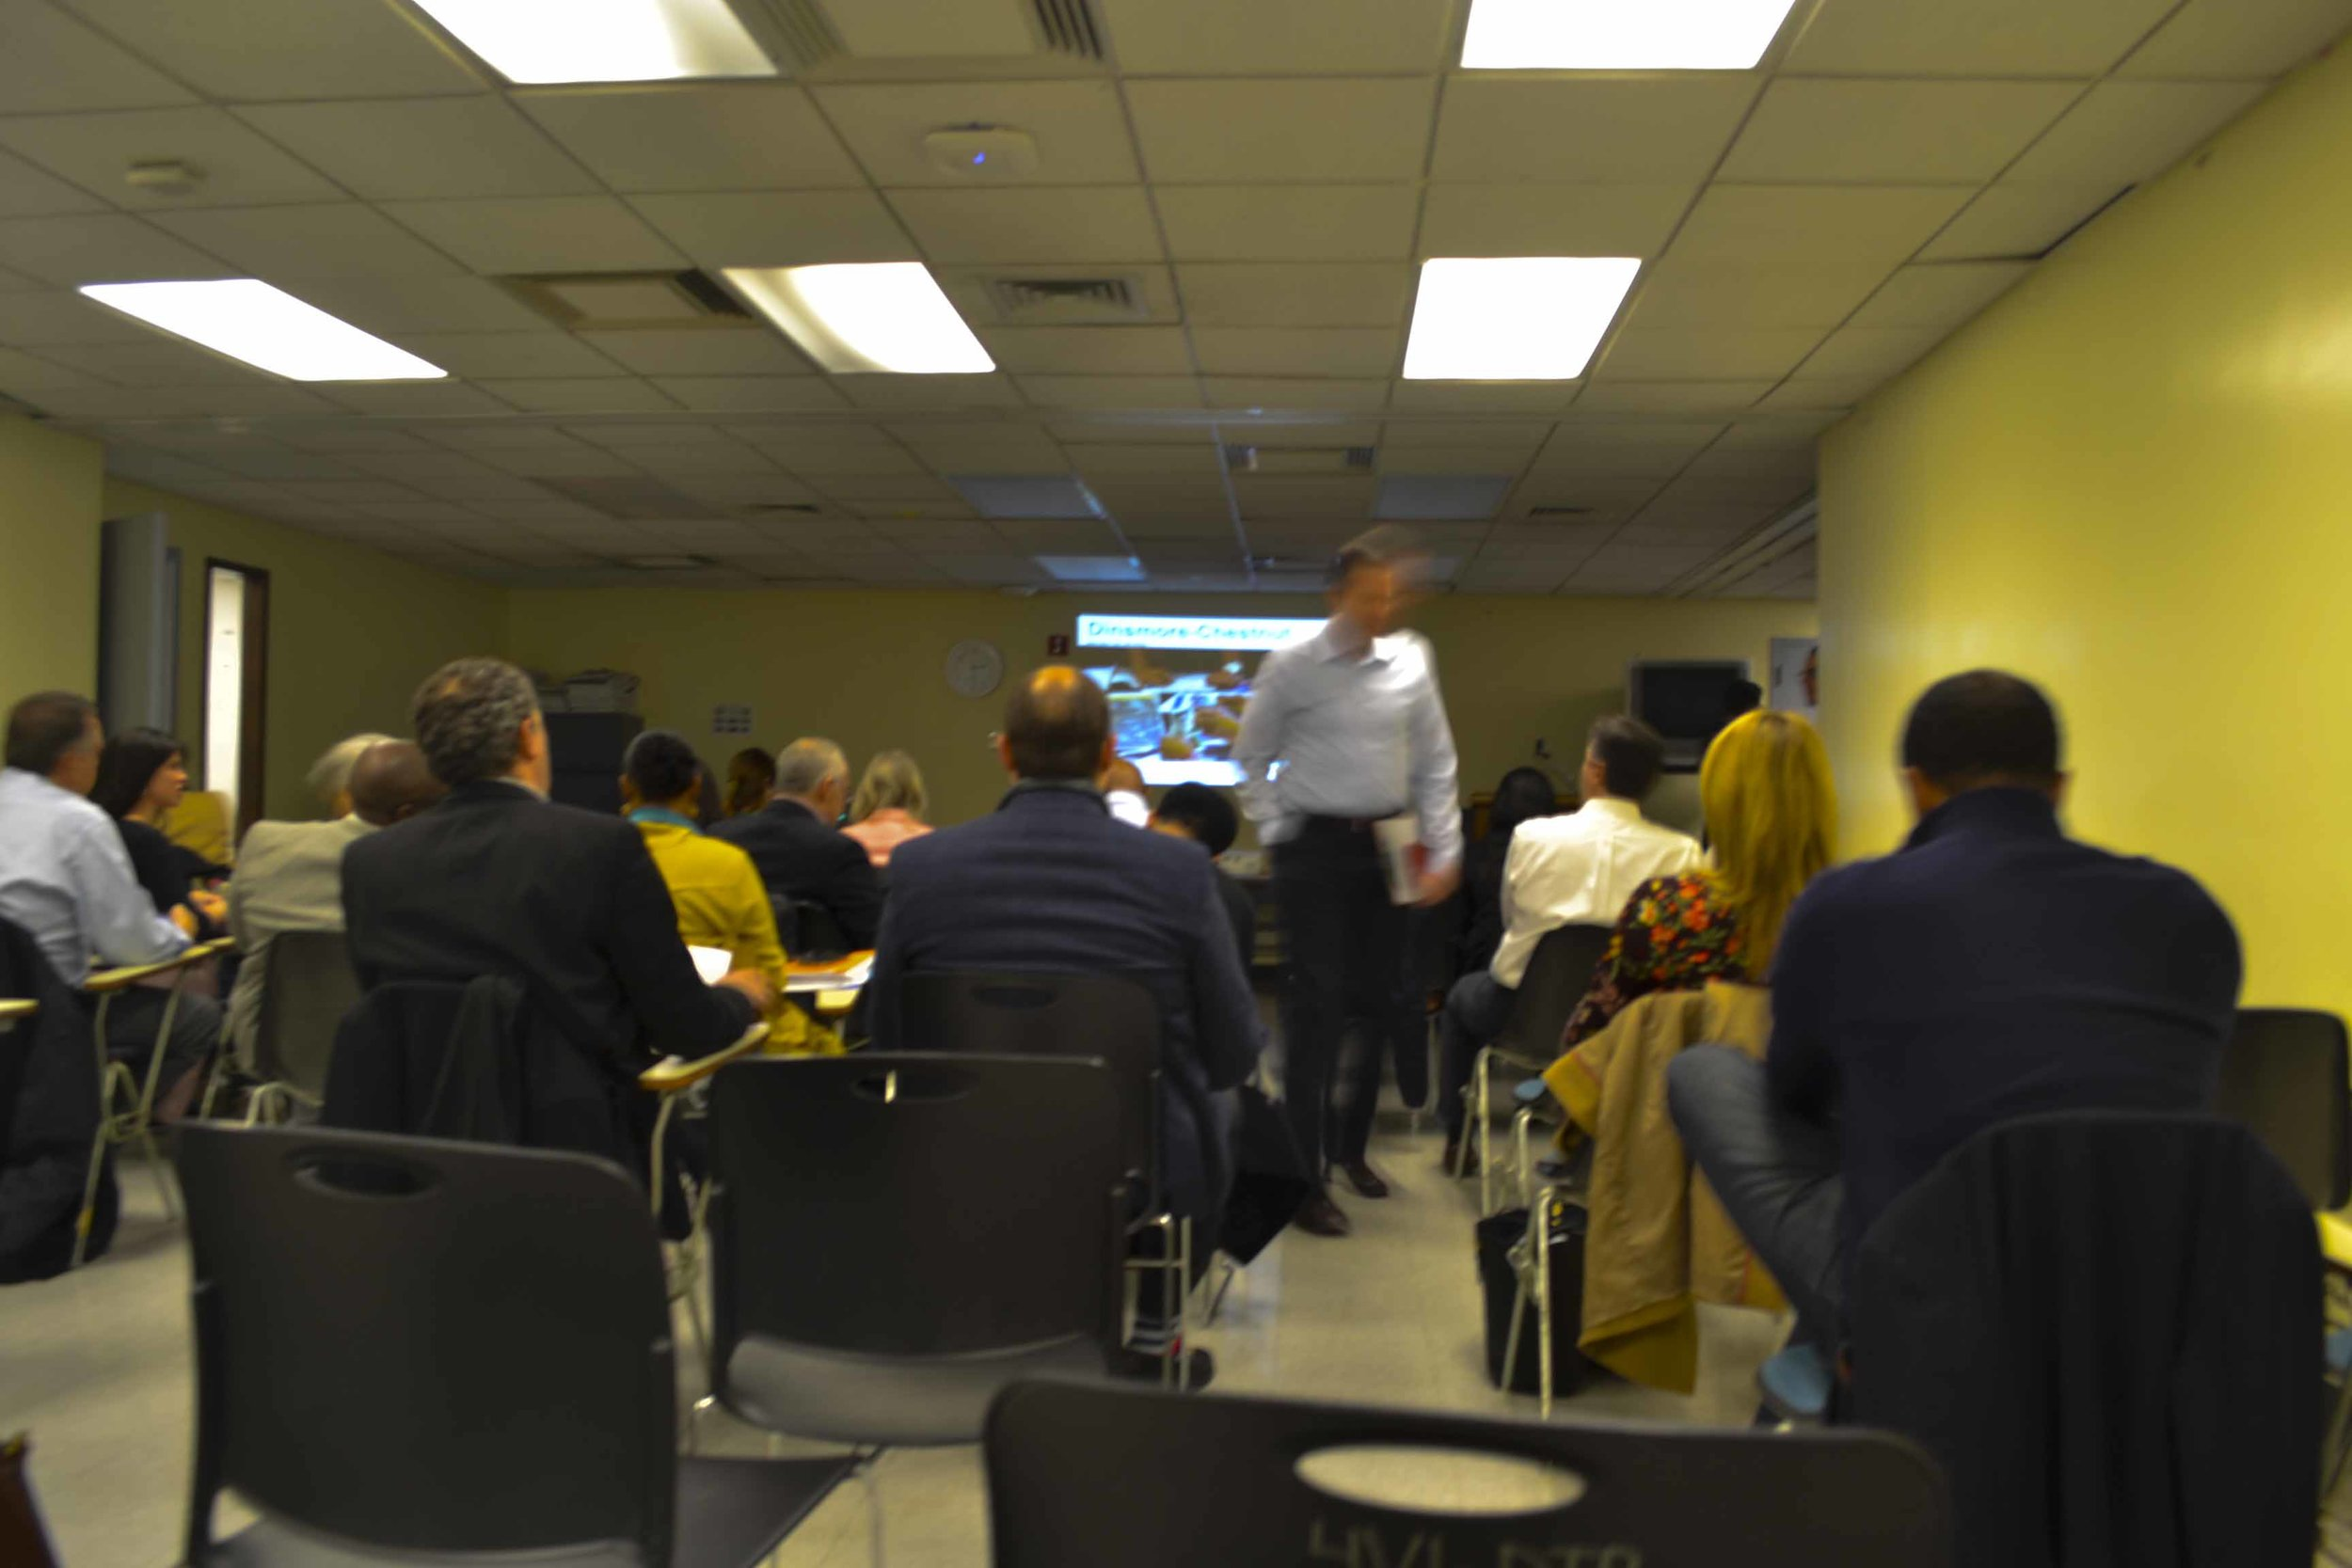 20170111__HPD pre-submission conferences_0188_social media images.jpg